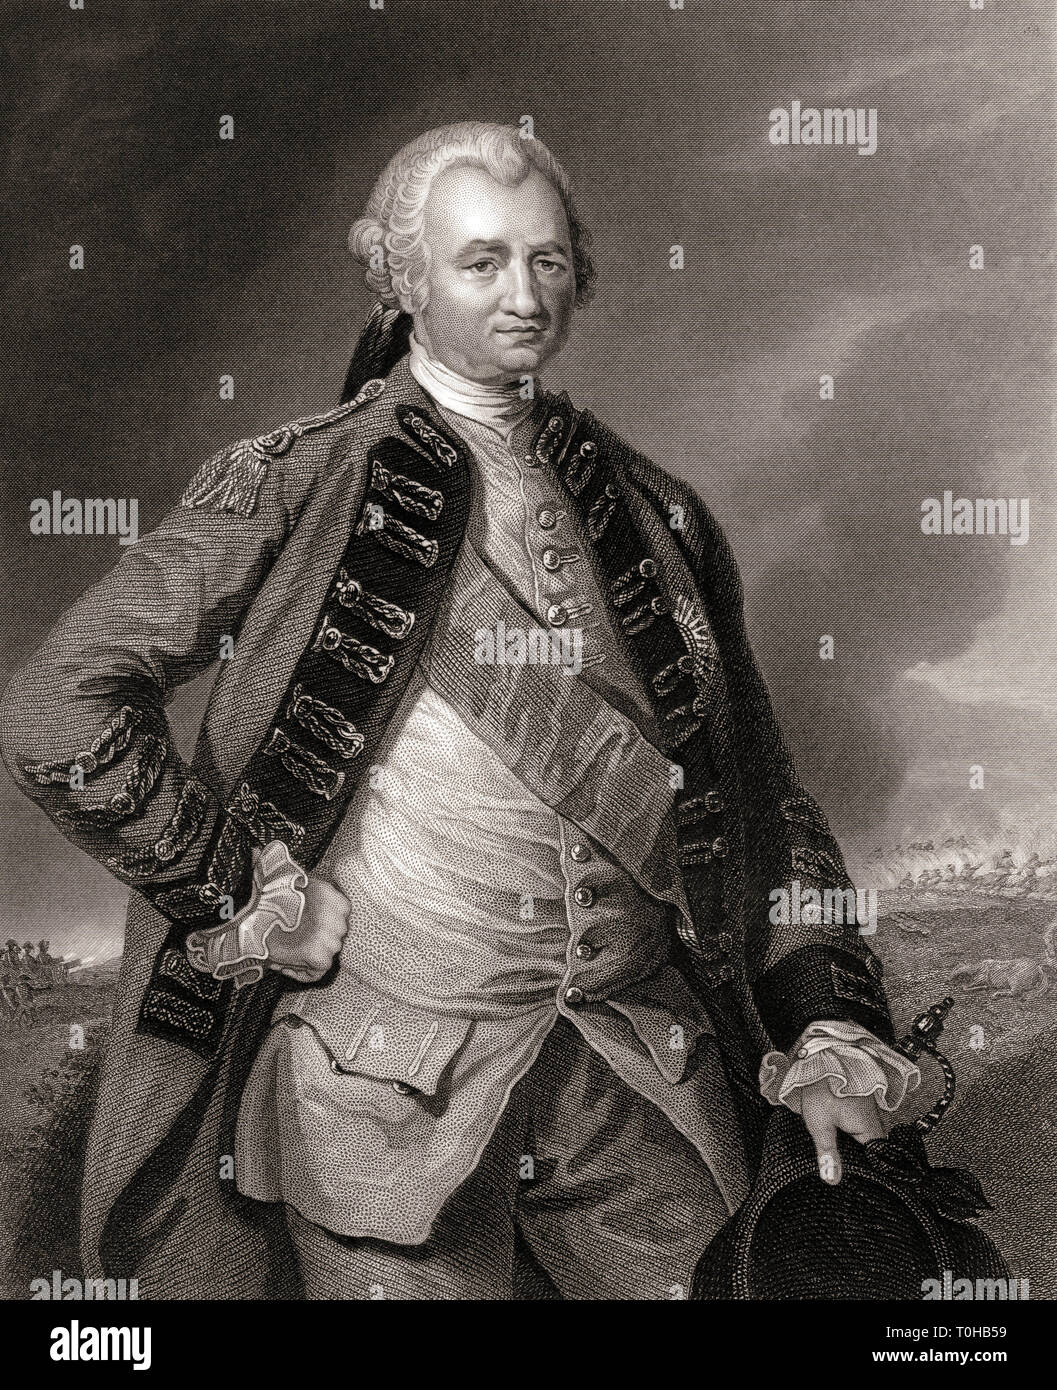 Major General Robert Clive, India, Asia - Stock Image